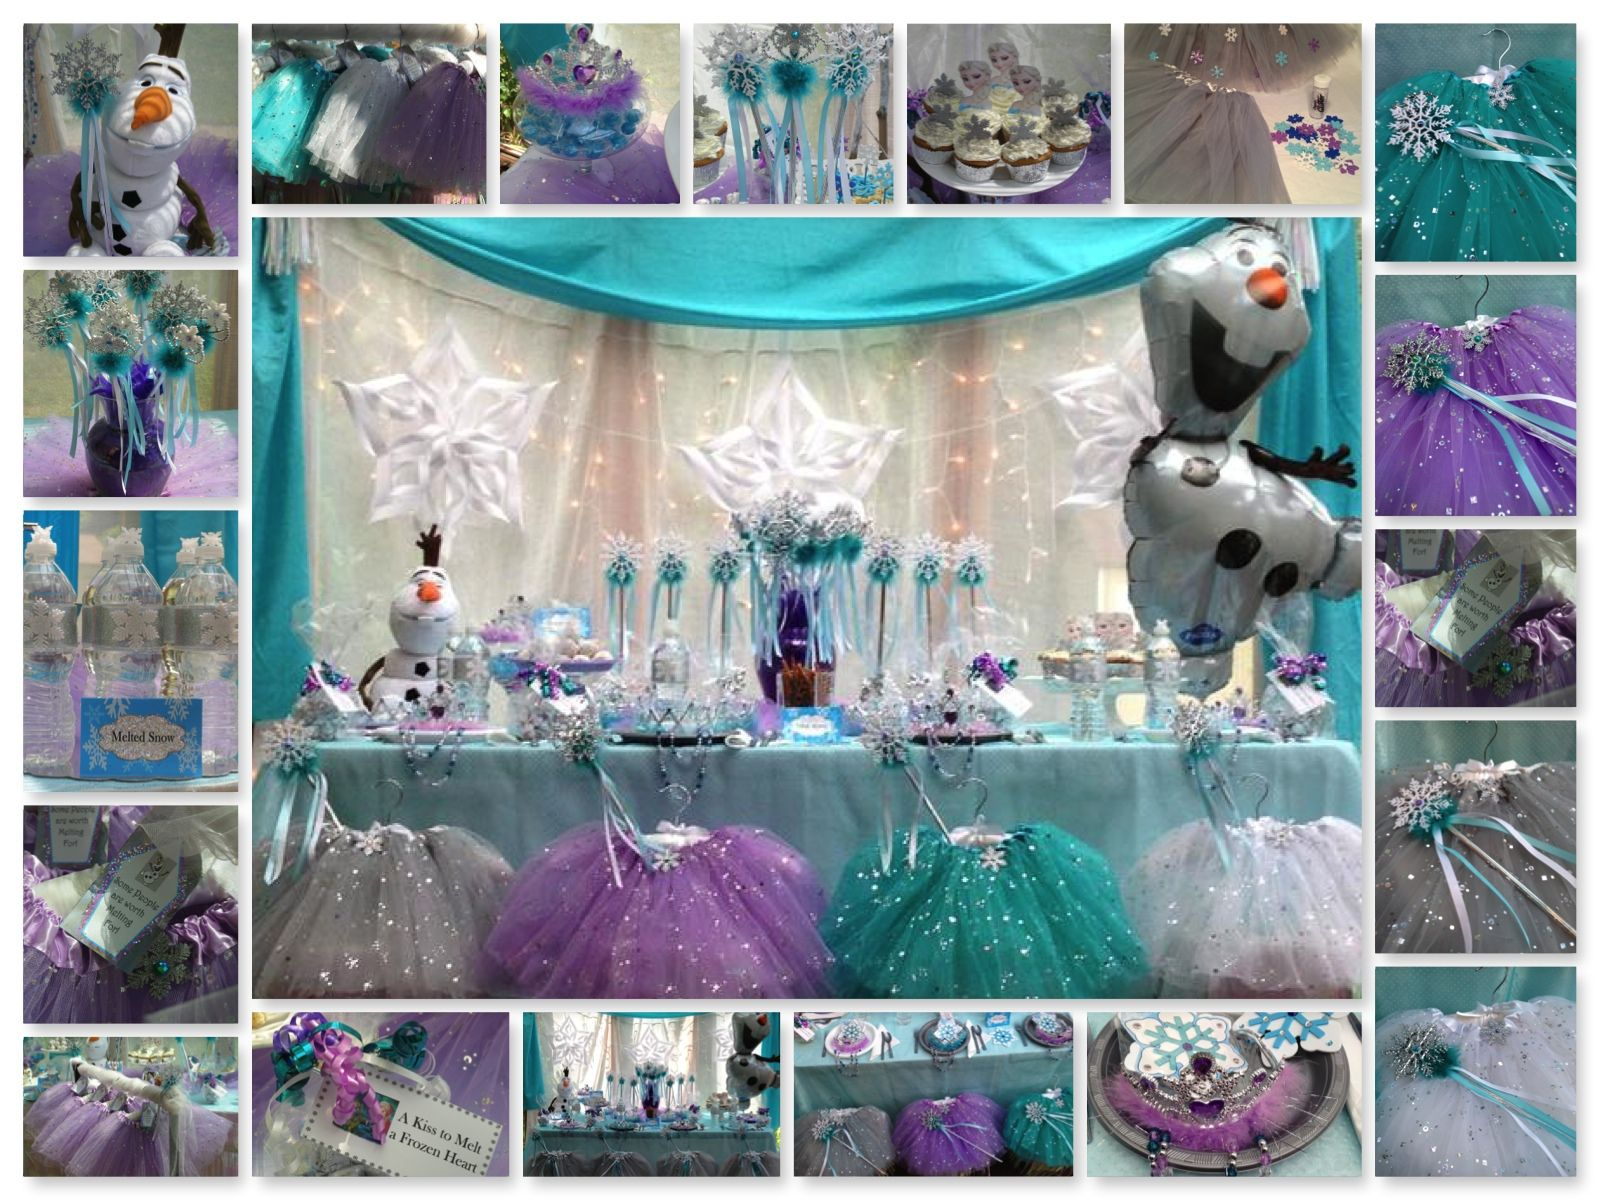 Frozen Birthday party ideas. September Special- 3 FREE Guests New Queen Frostine Party from My Princess Party to Go. See it now http://www.myprincesspartytogo.com #frozenparty #Disneyfrozenparty